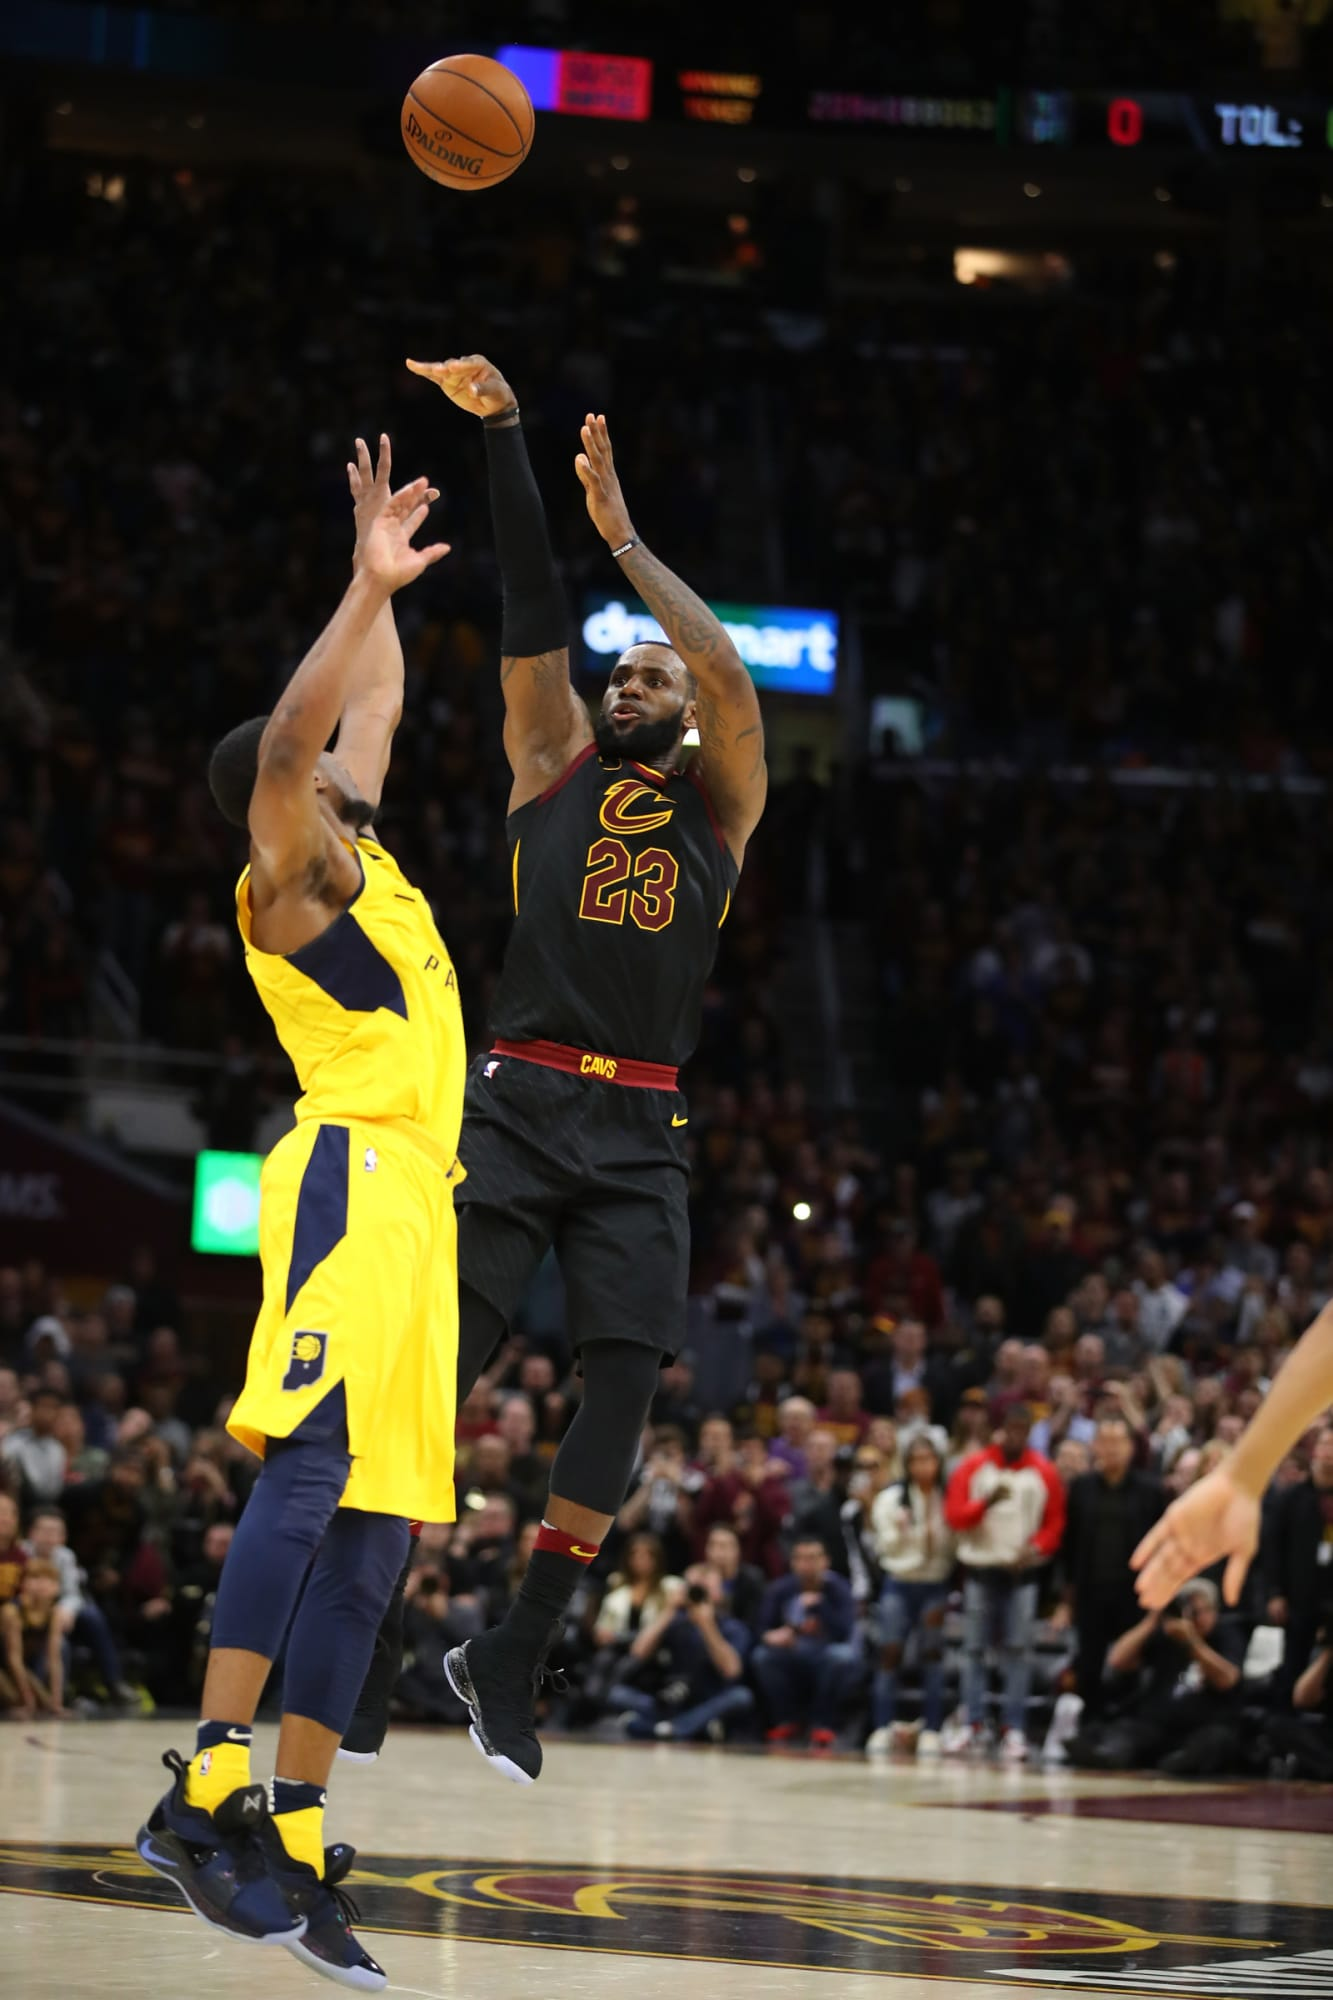 FanSided is right: LeBron James is more clutch than Kobe Bryant